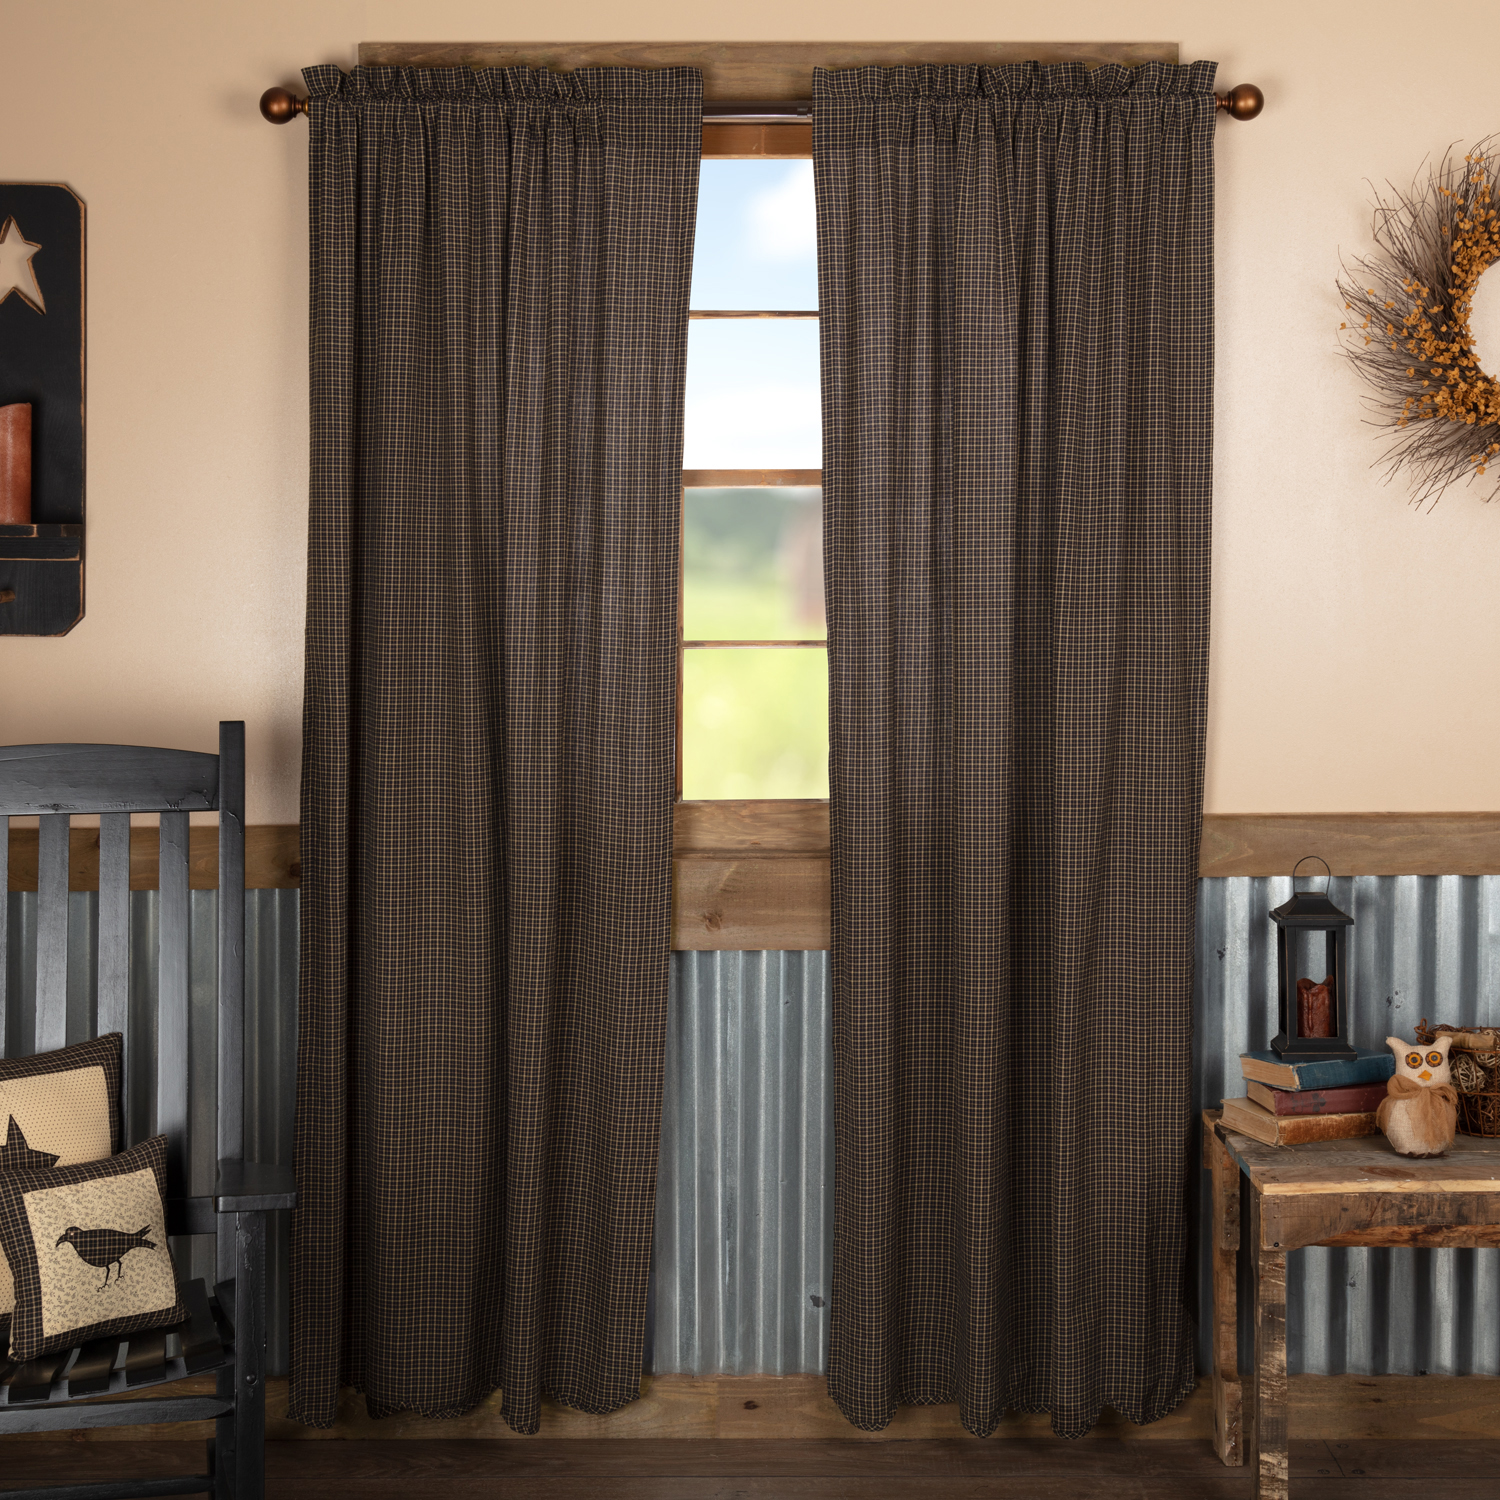 Kettle Grove Plaid Panel Scalloped Set of 2 84x40